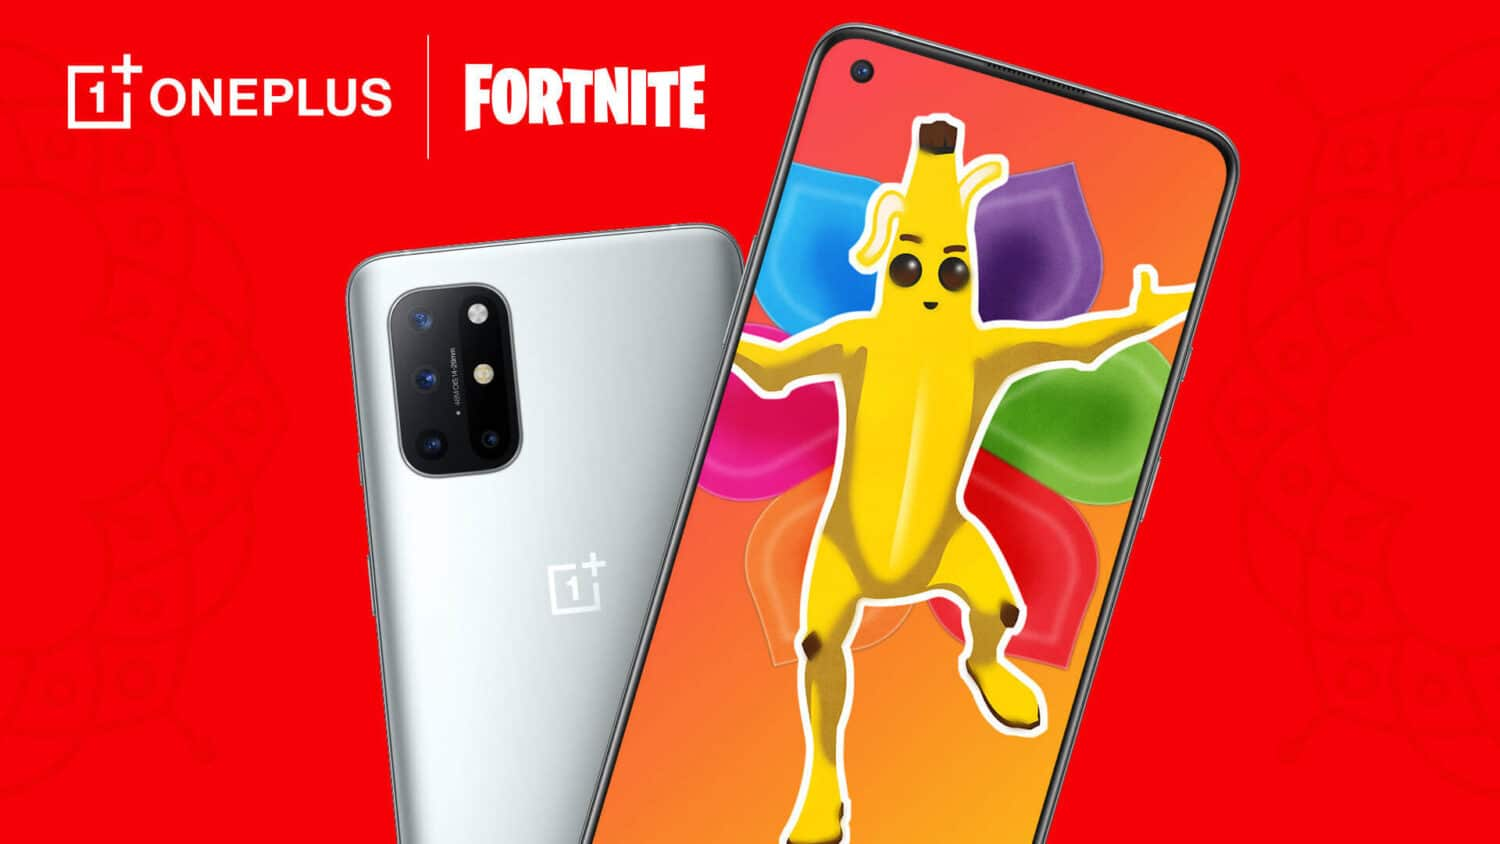 oneplus-8t-fortnite-competition